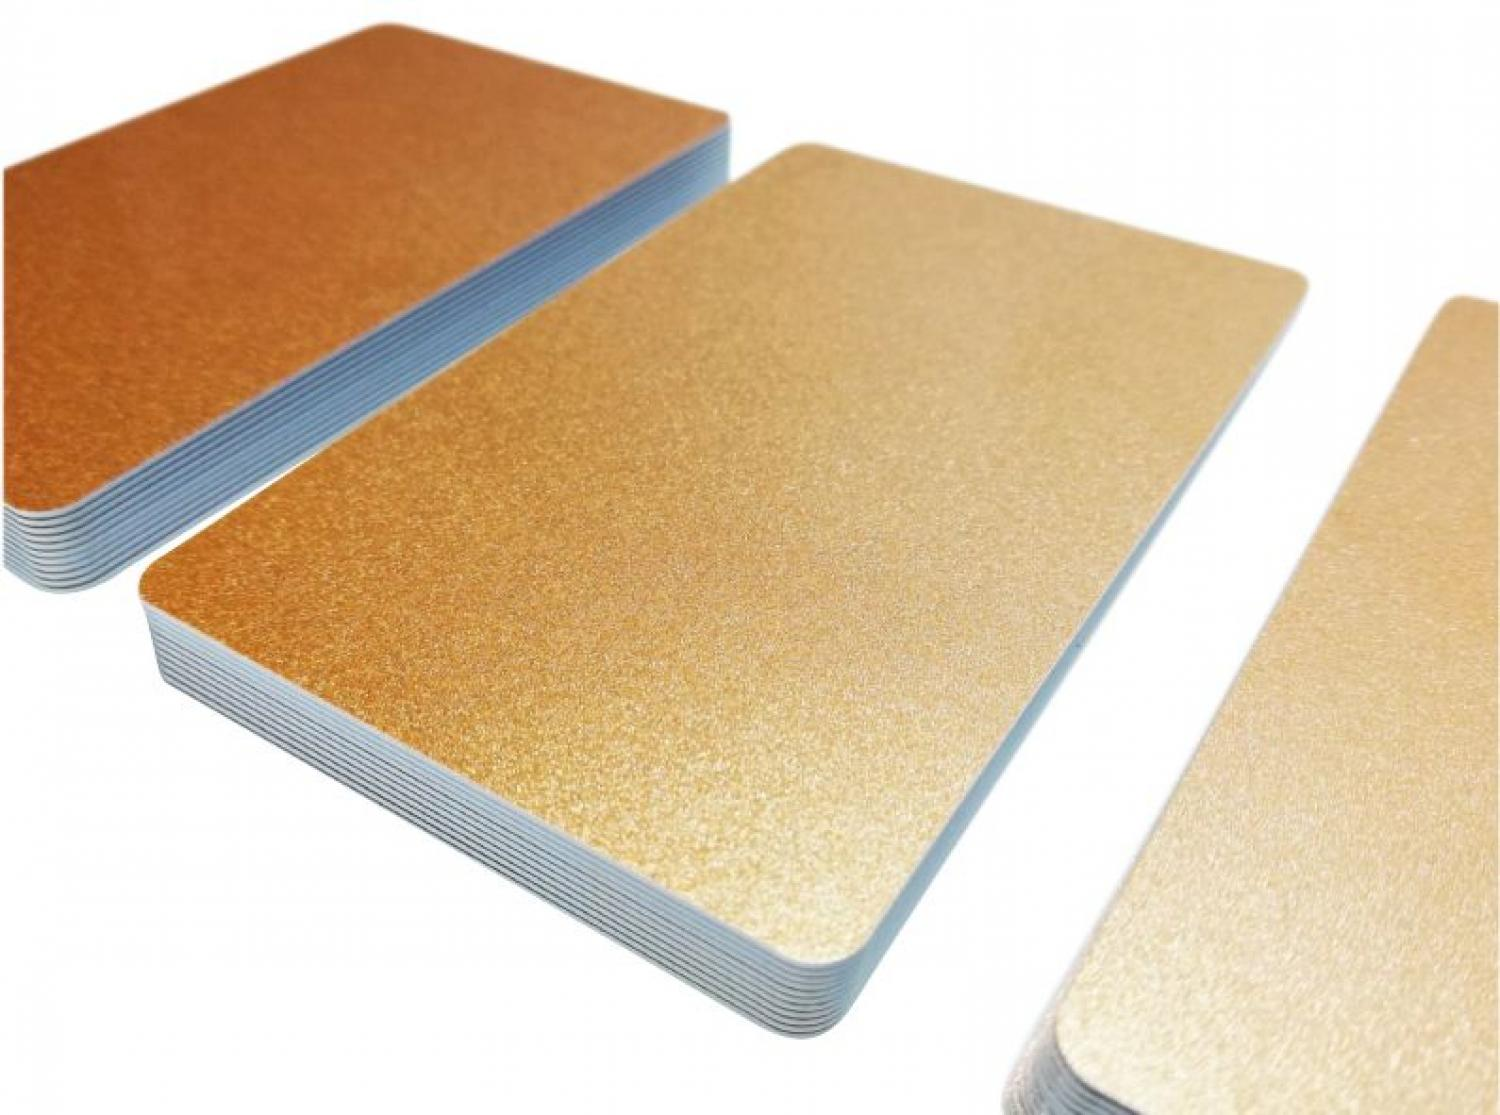 plastic card bronce